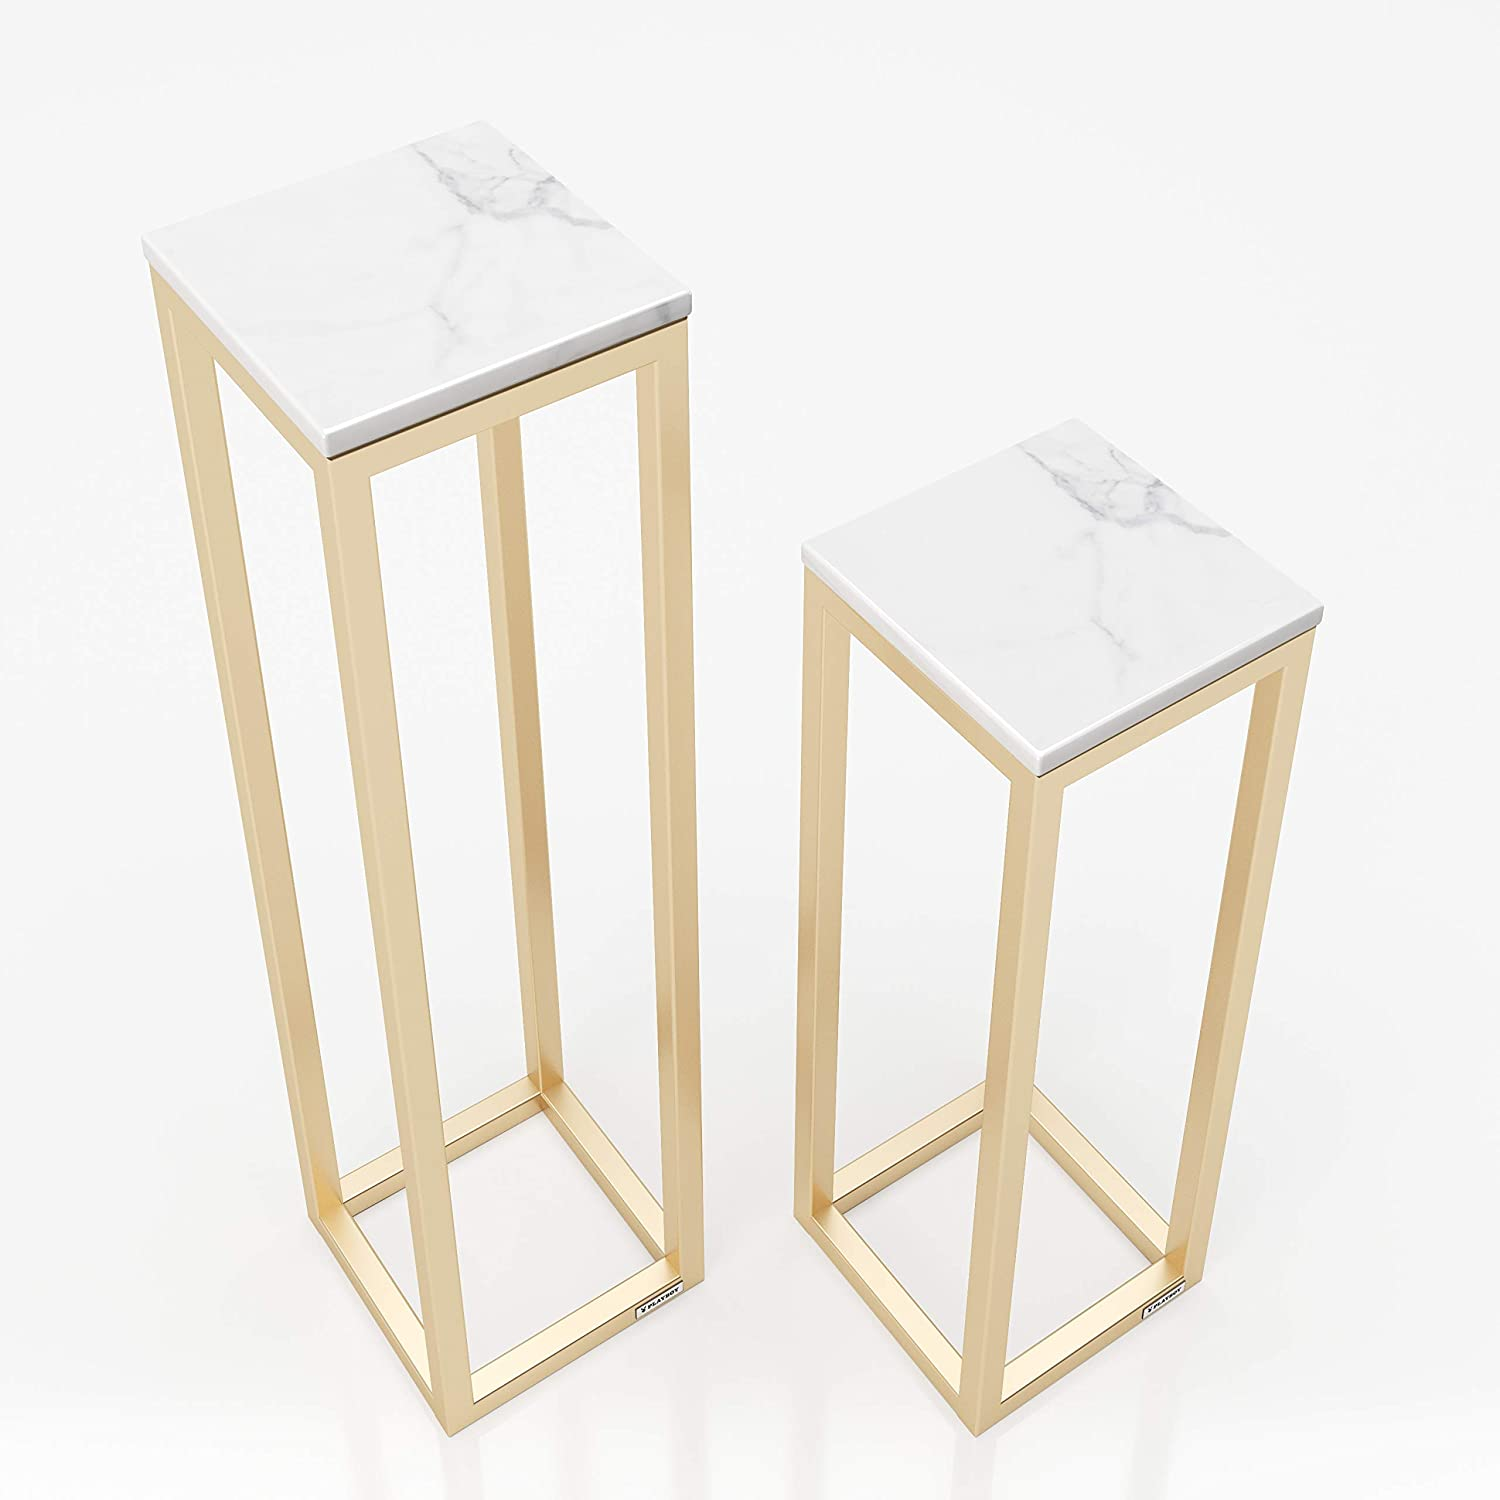 Gold 20 x 80 x 20 cm Playboy 175801MB Nest of Tables Flower Stand Lounge 2 Pieces Metal Marble